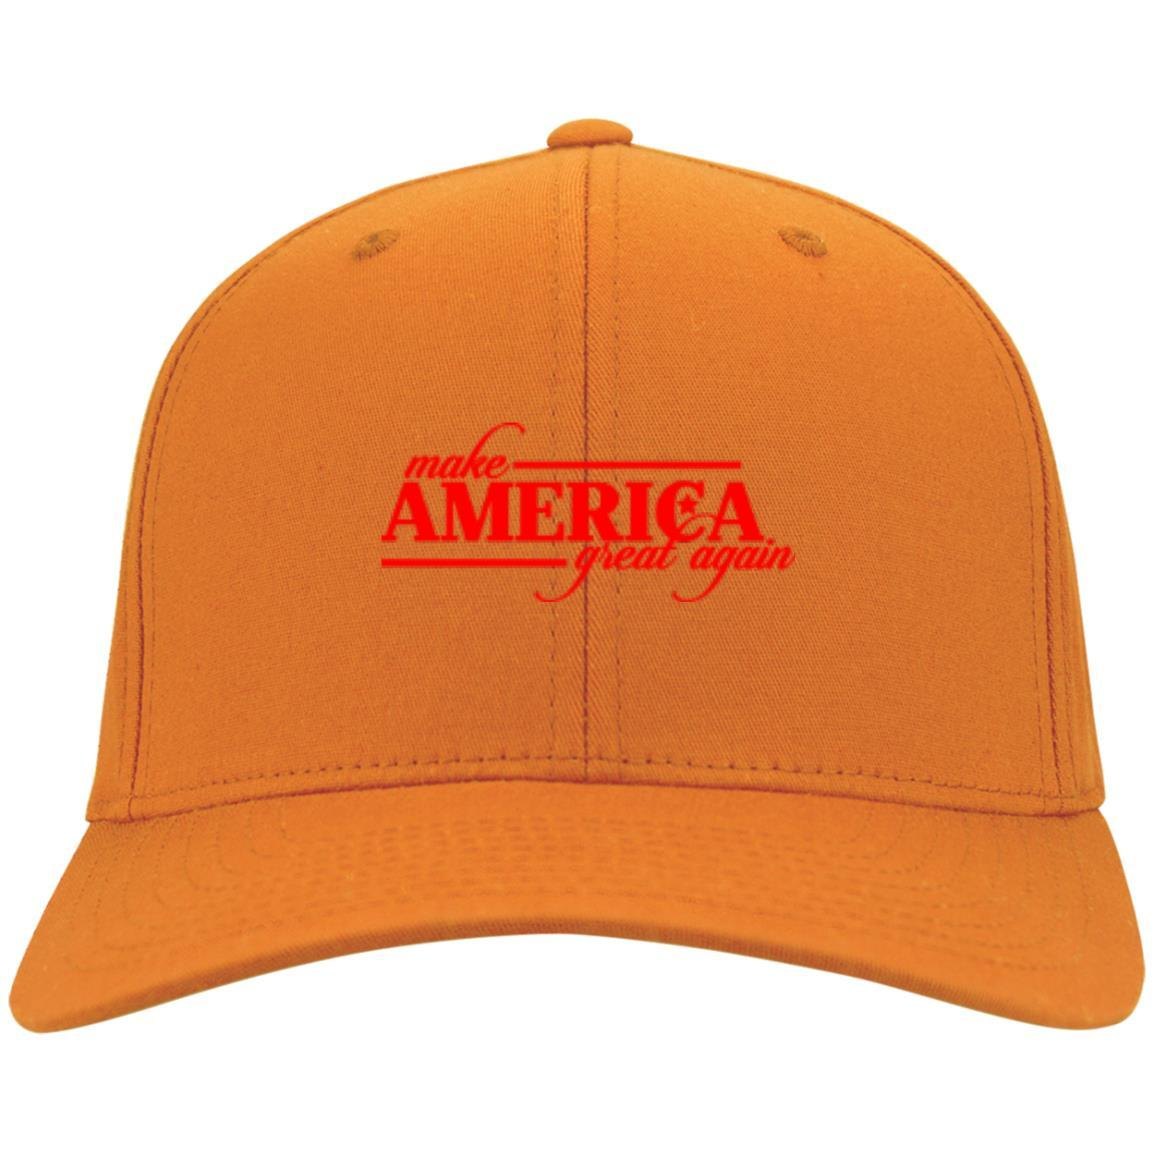 Make America Great Again - Port & Co. Twill Cap Orange